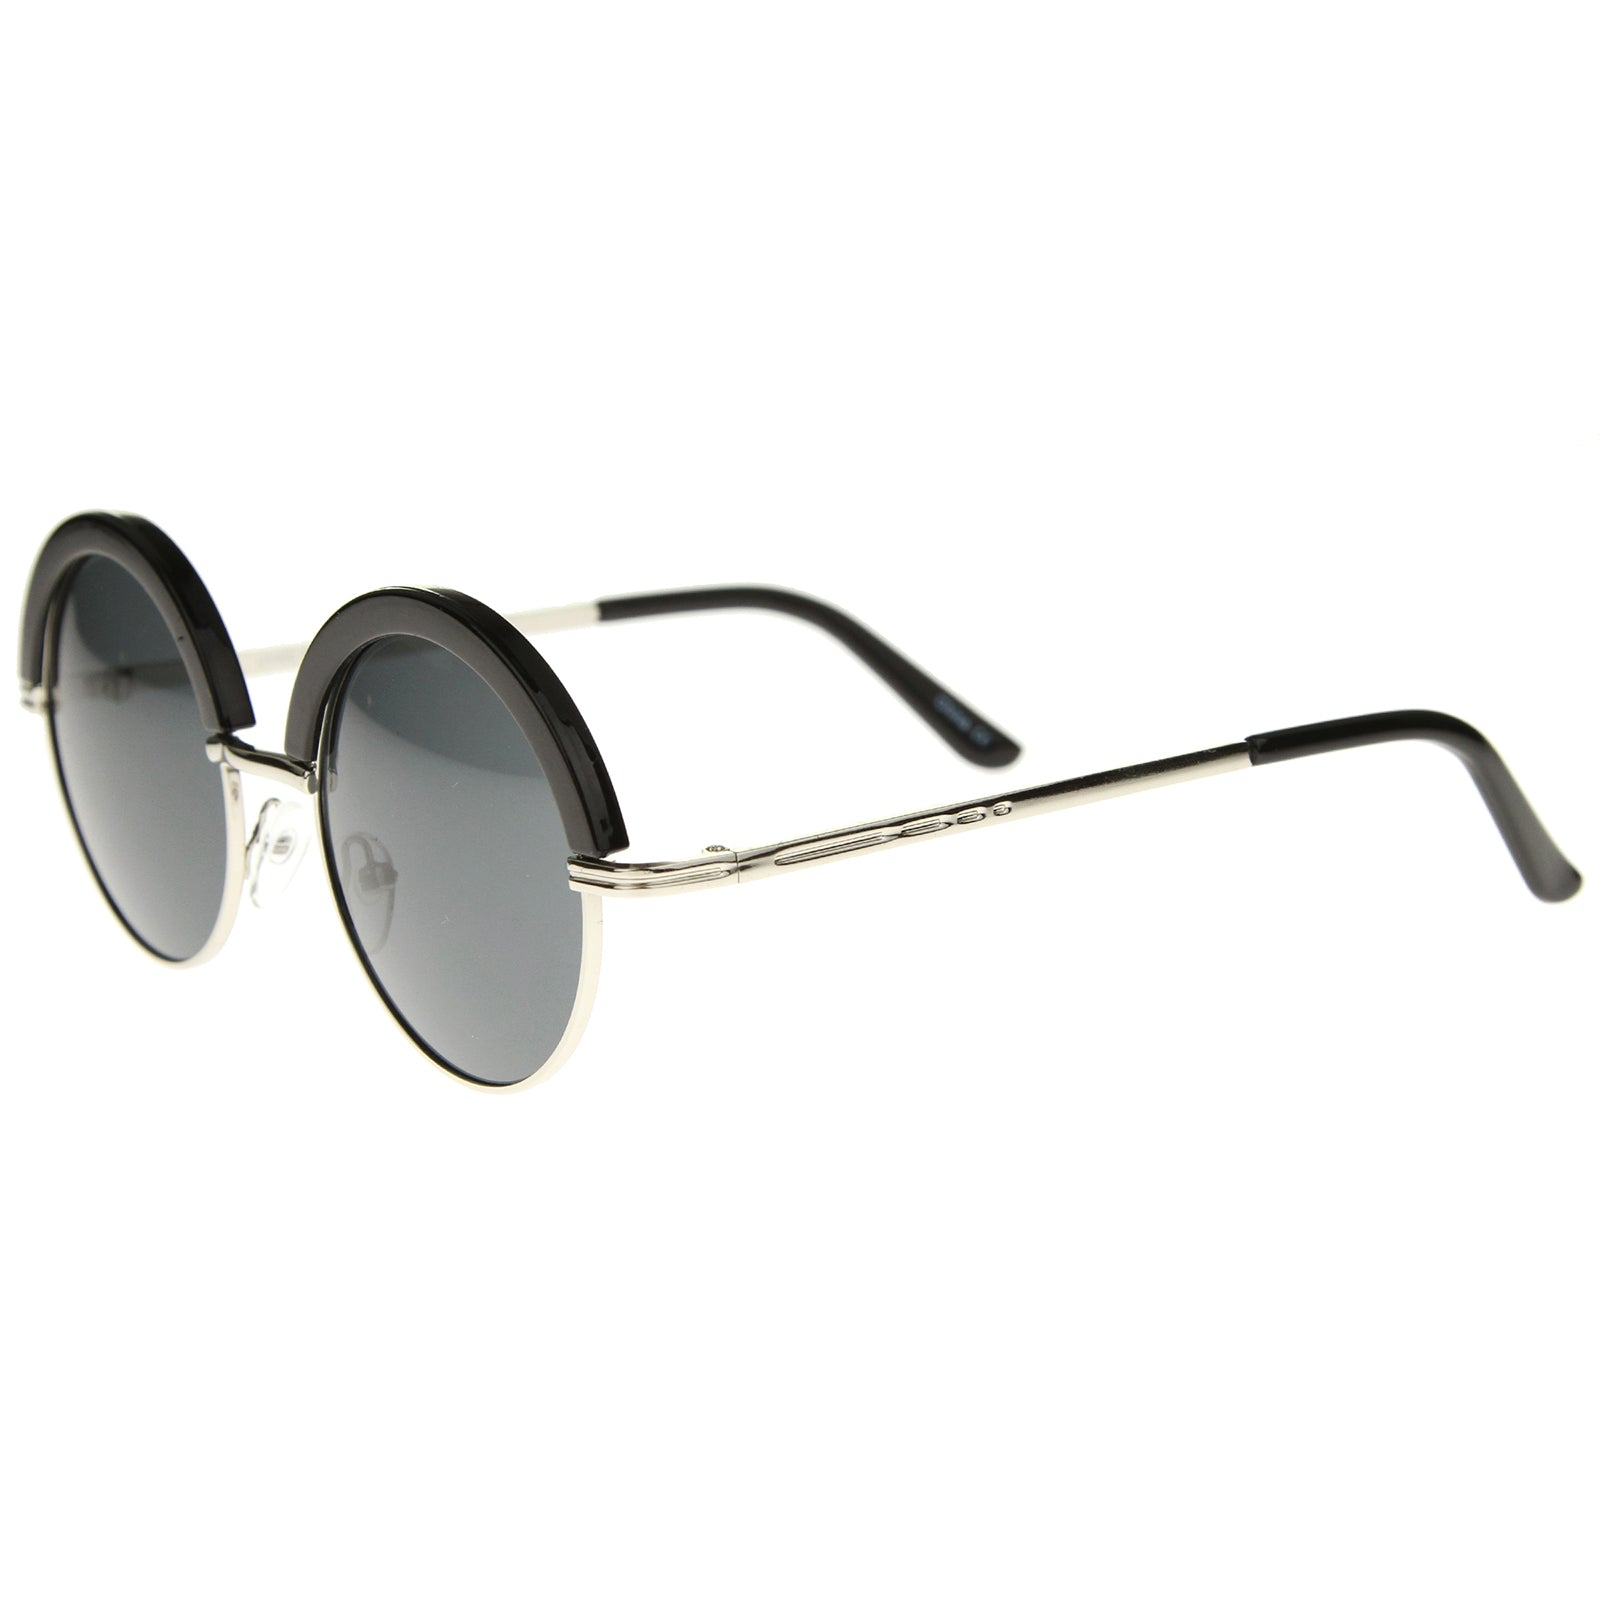 Womens Metal Round Sunglasses With UV400 Protected Composite Lens - sunglass.la - 11